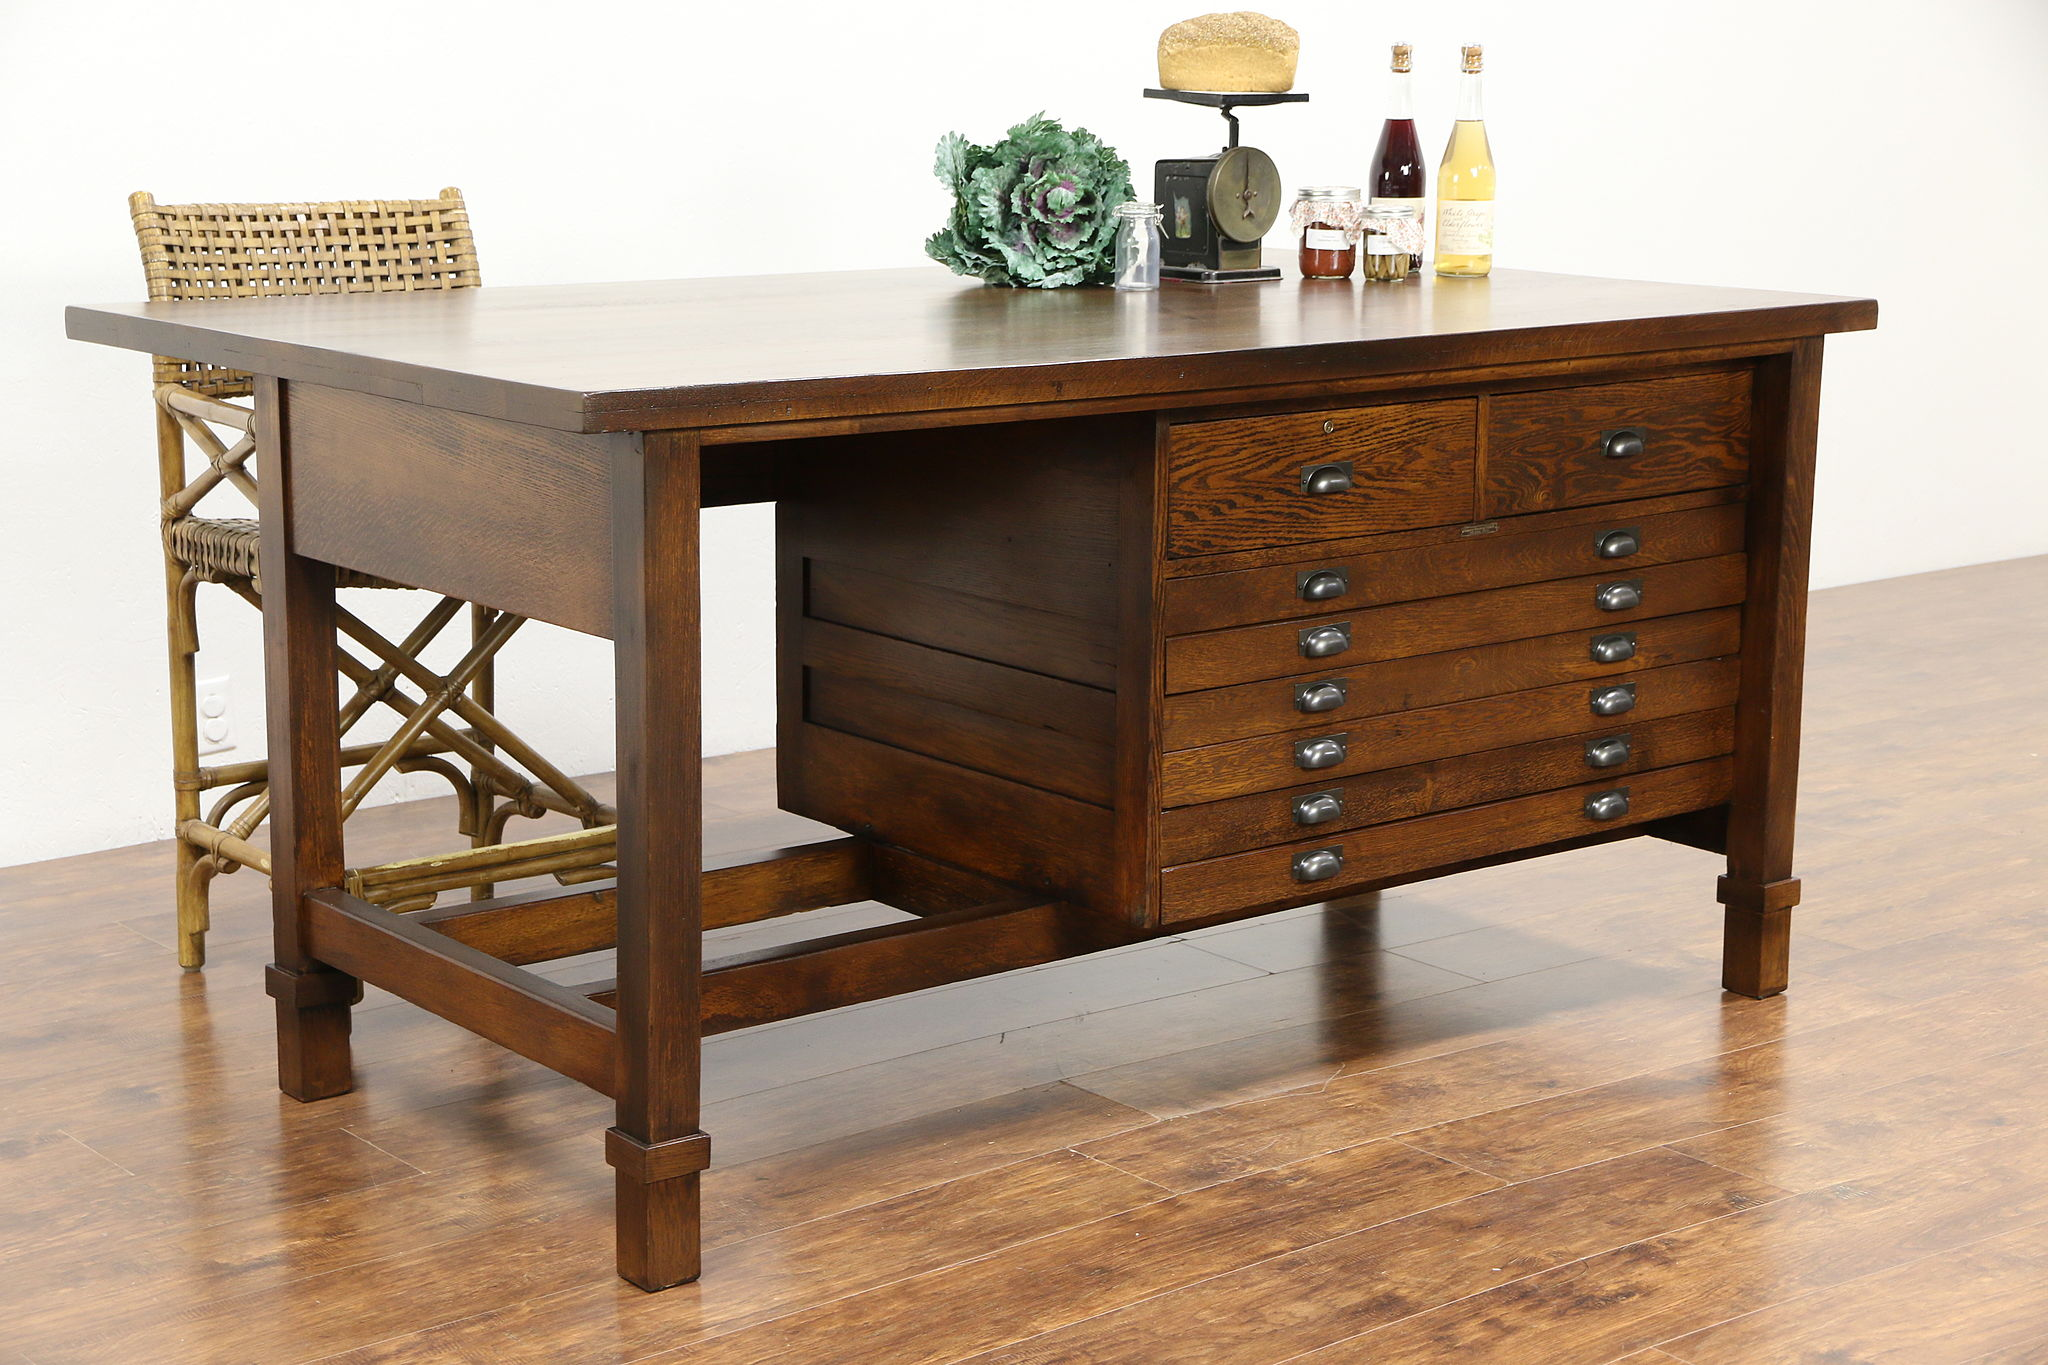 oak 1920 antique architect drafting table kitchen counter island